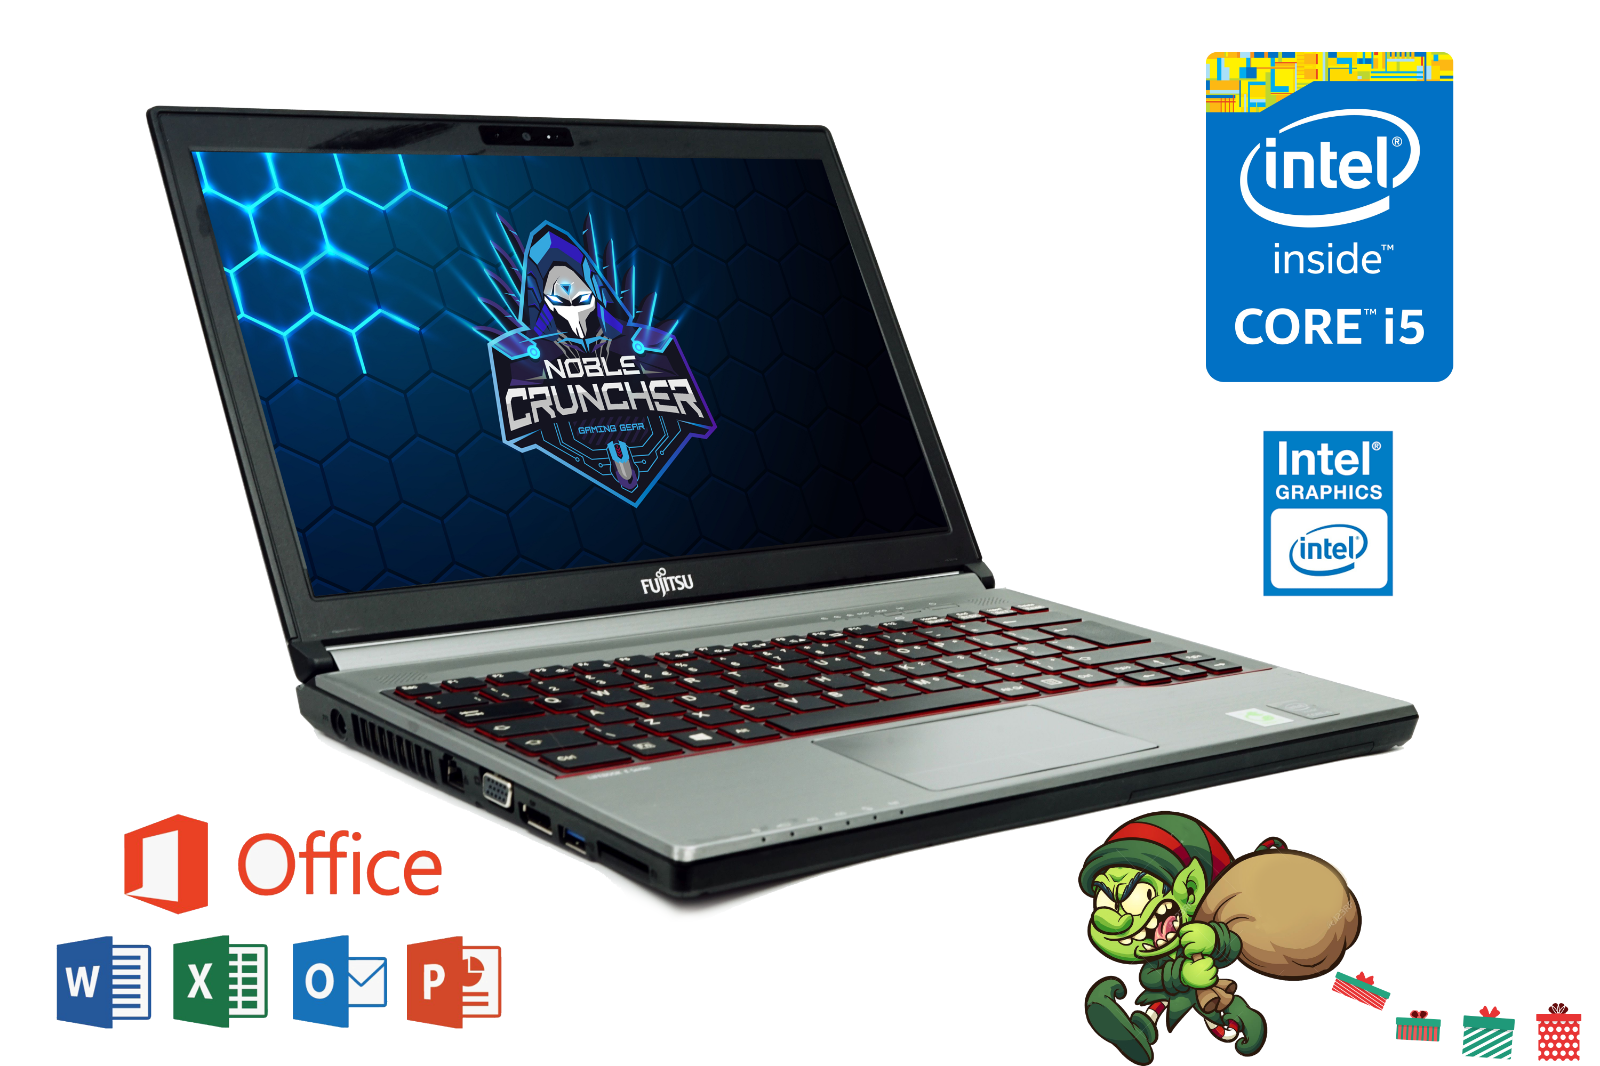 Laptop Windows - Cheap Gaming Laptop Intel Core i5 6GB RAM 500GB HDD Windows 10 Warranty PC